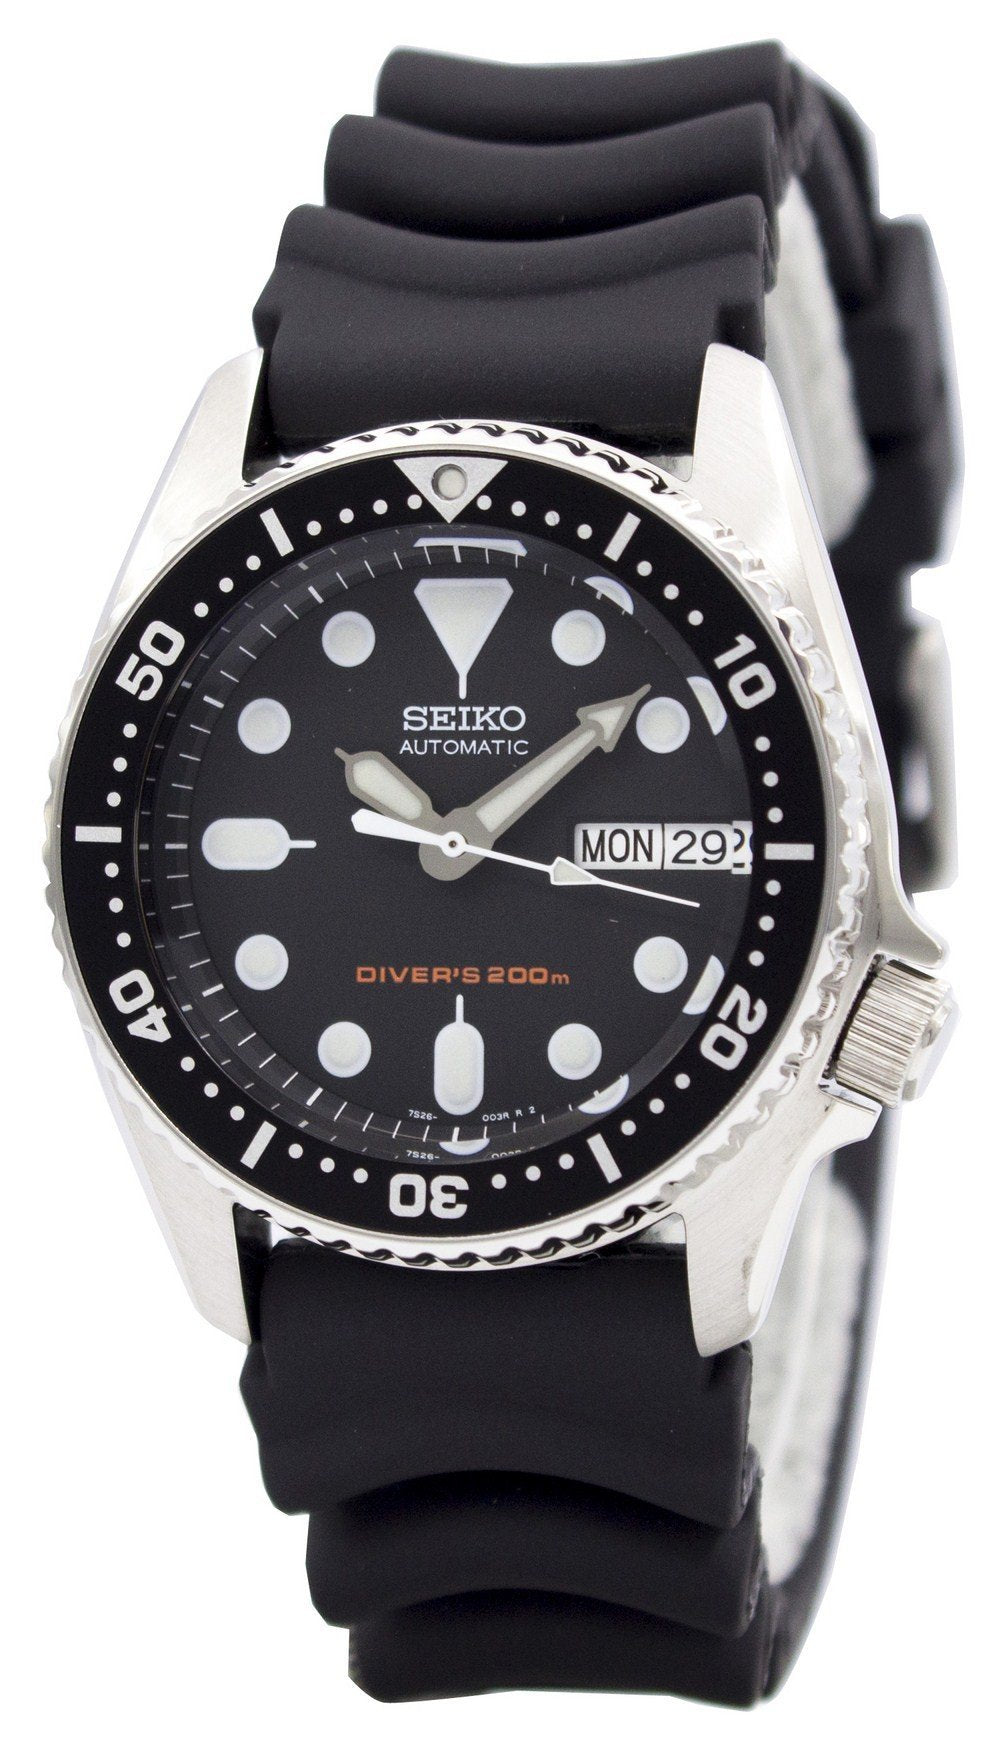 Seiko Automatic Diver's 200M SKX013 SKX013K1 SKX013K Men's Watch